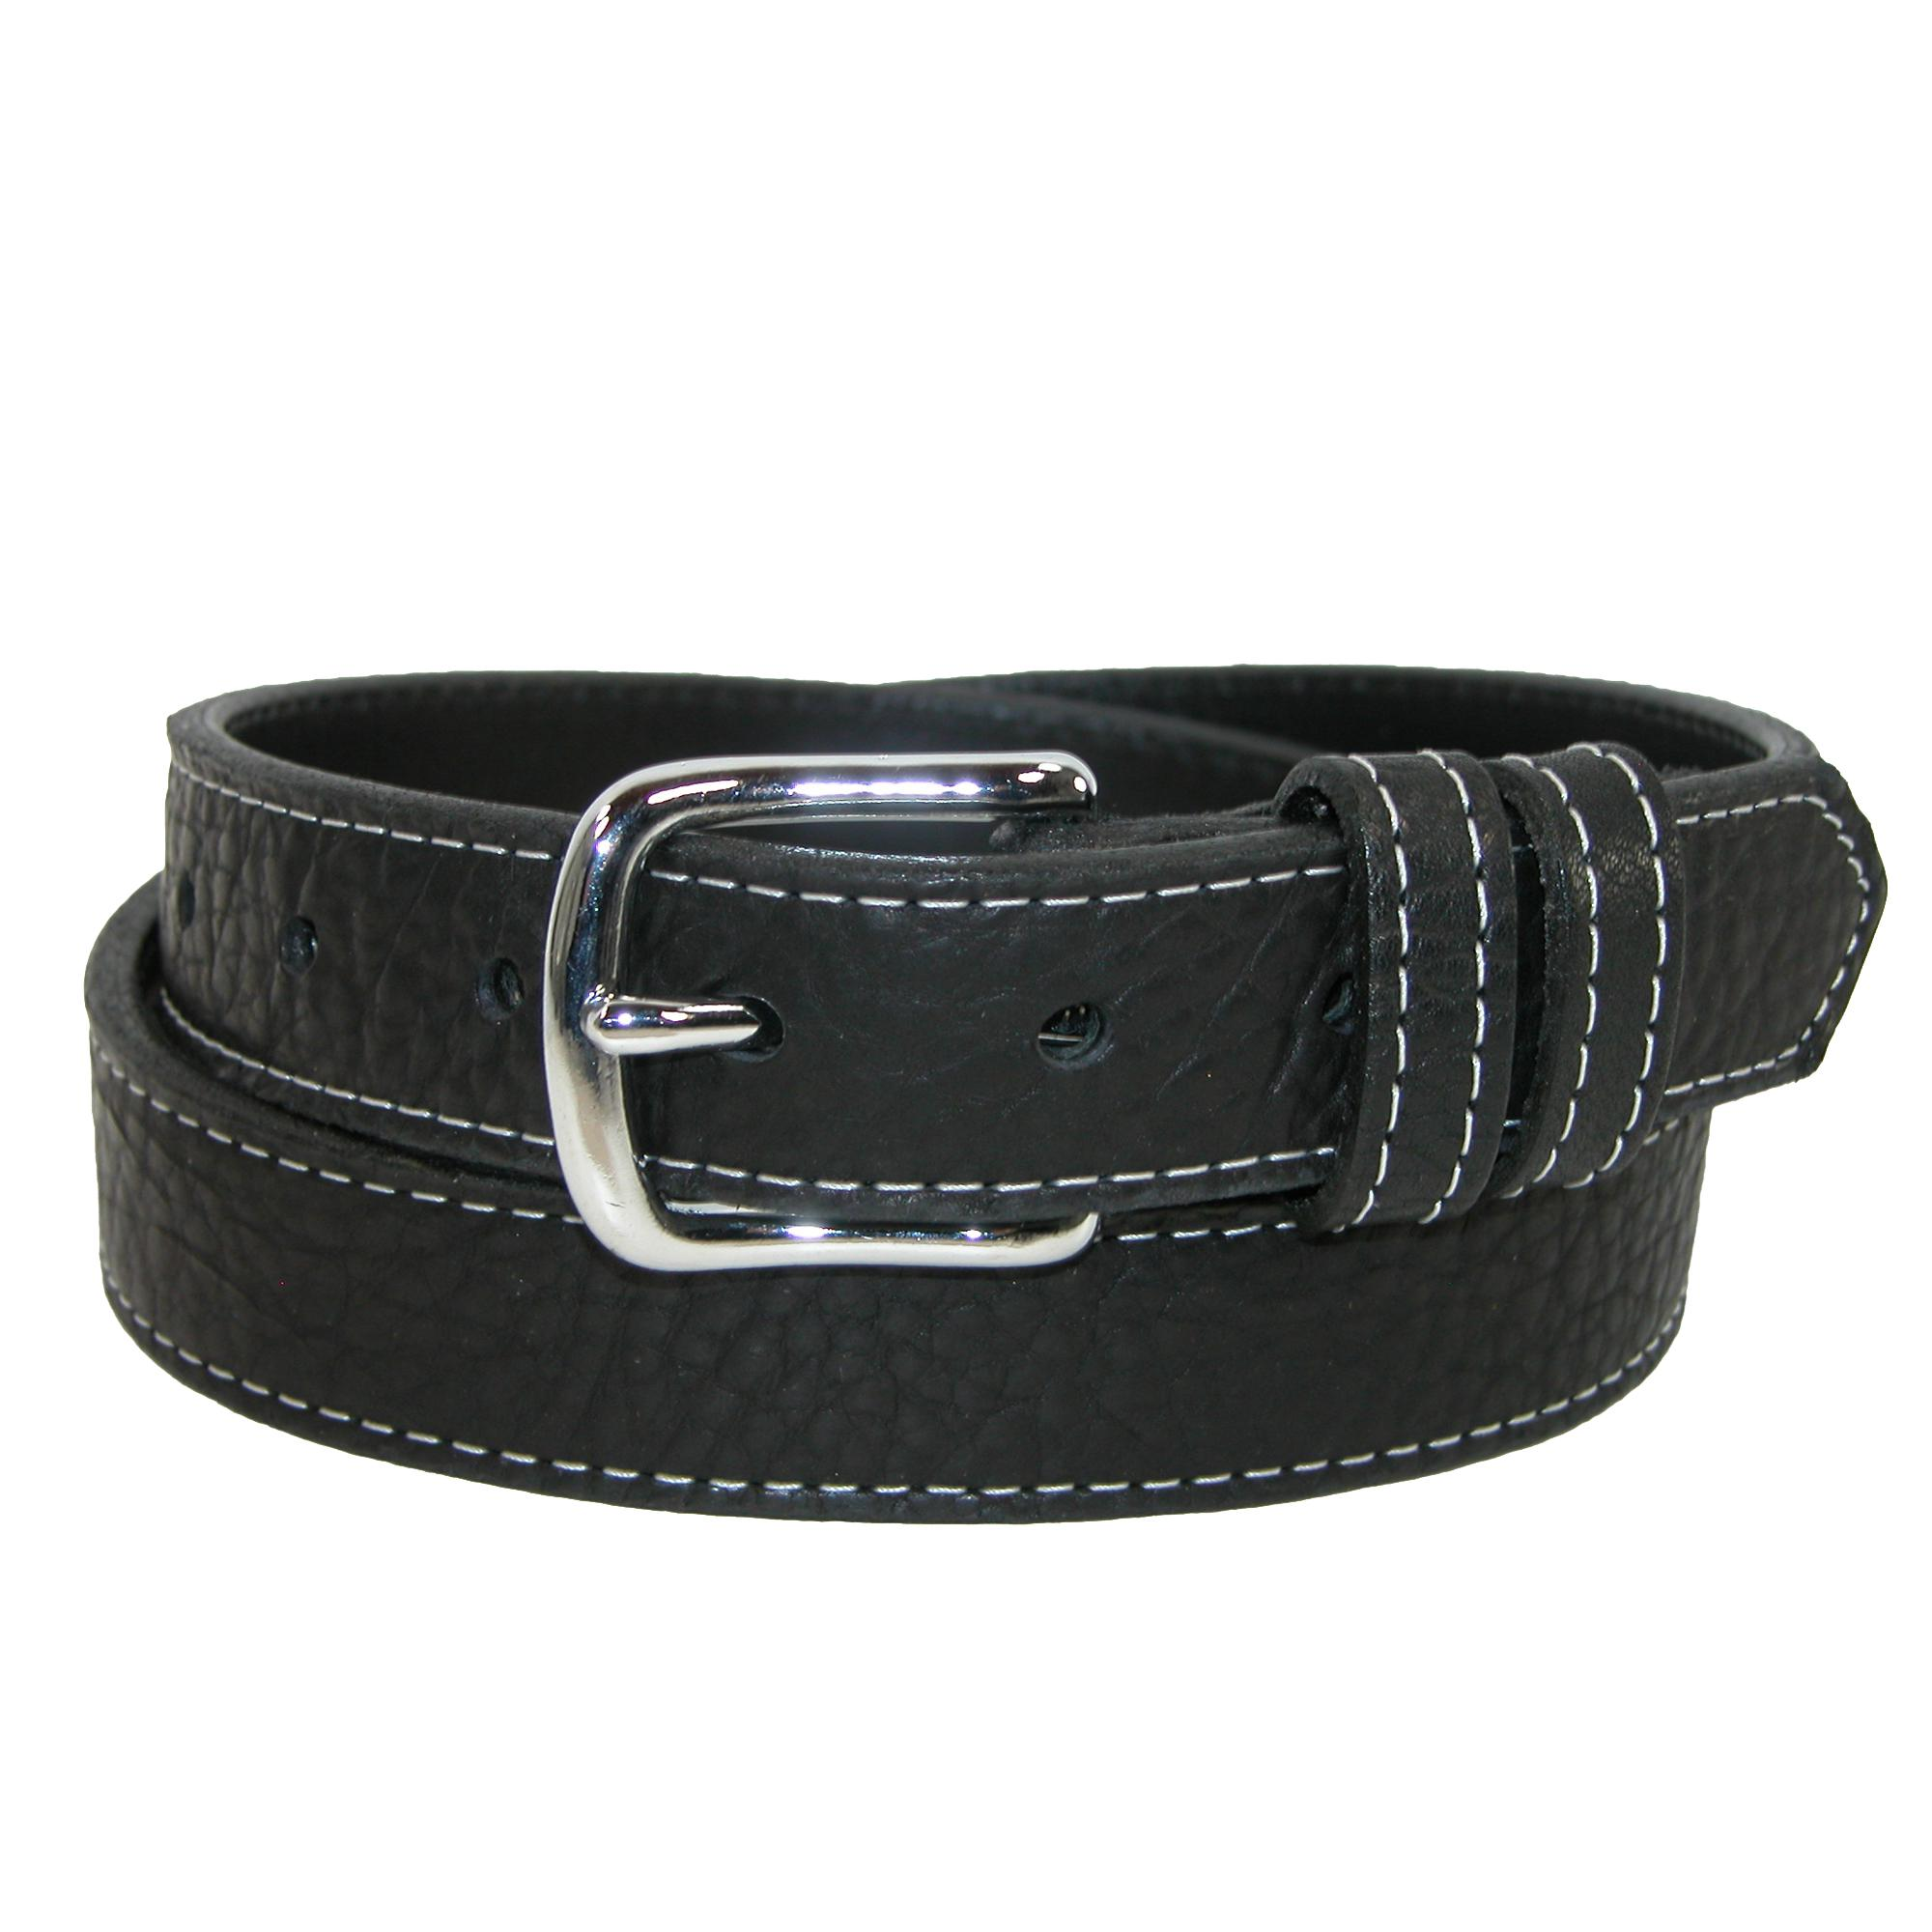 Boston Leather Mens Big & Tall Grizzley Bison Leather With Contrast Stitch Belt